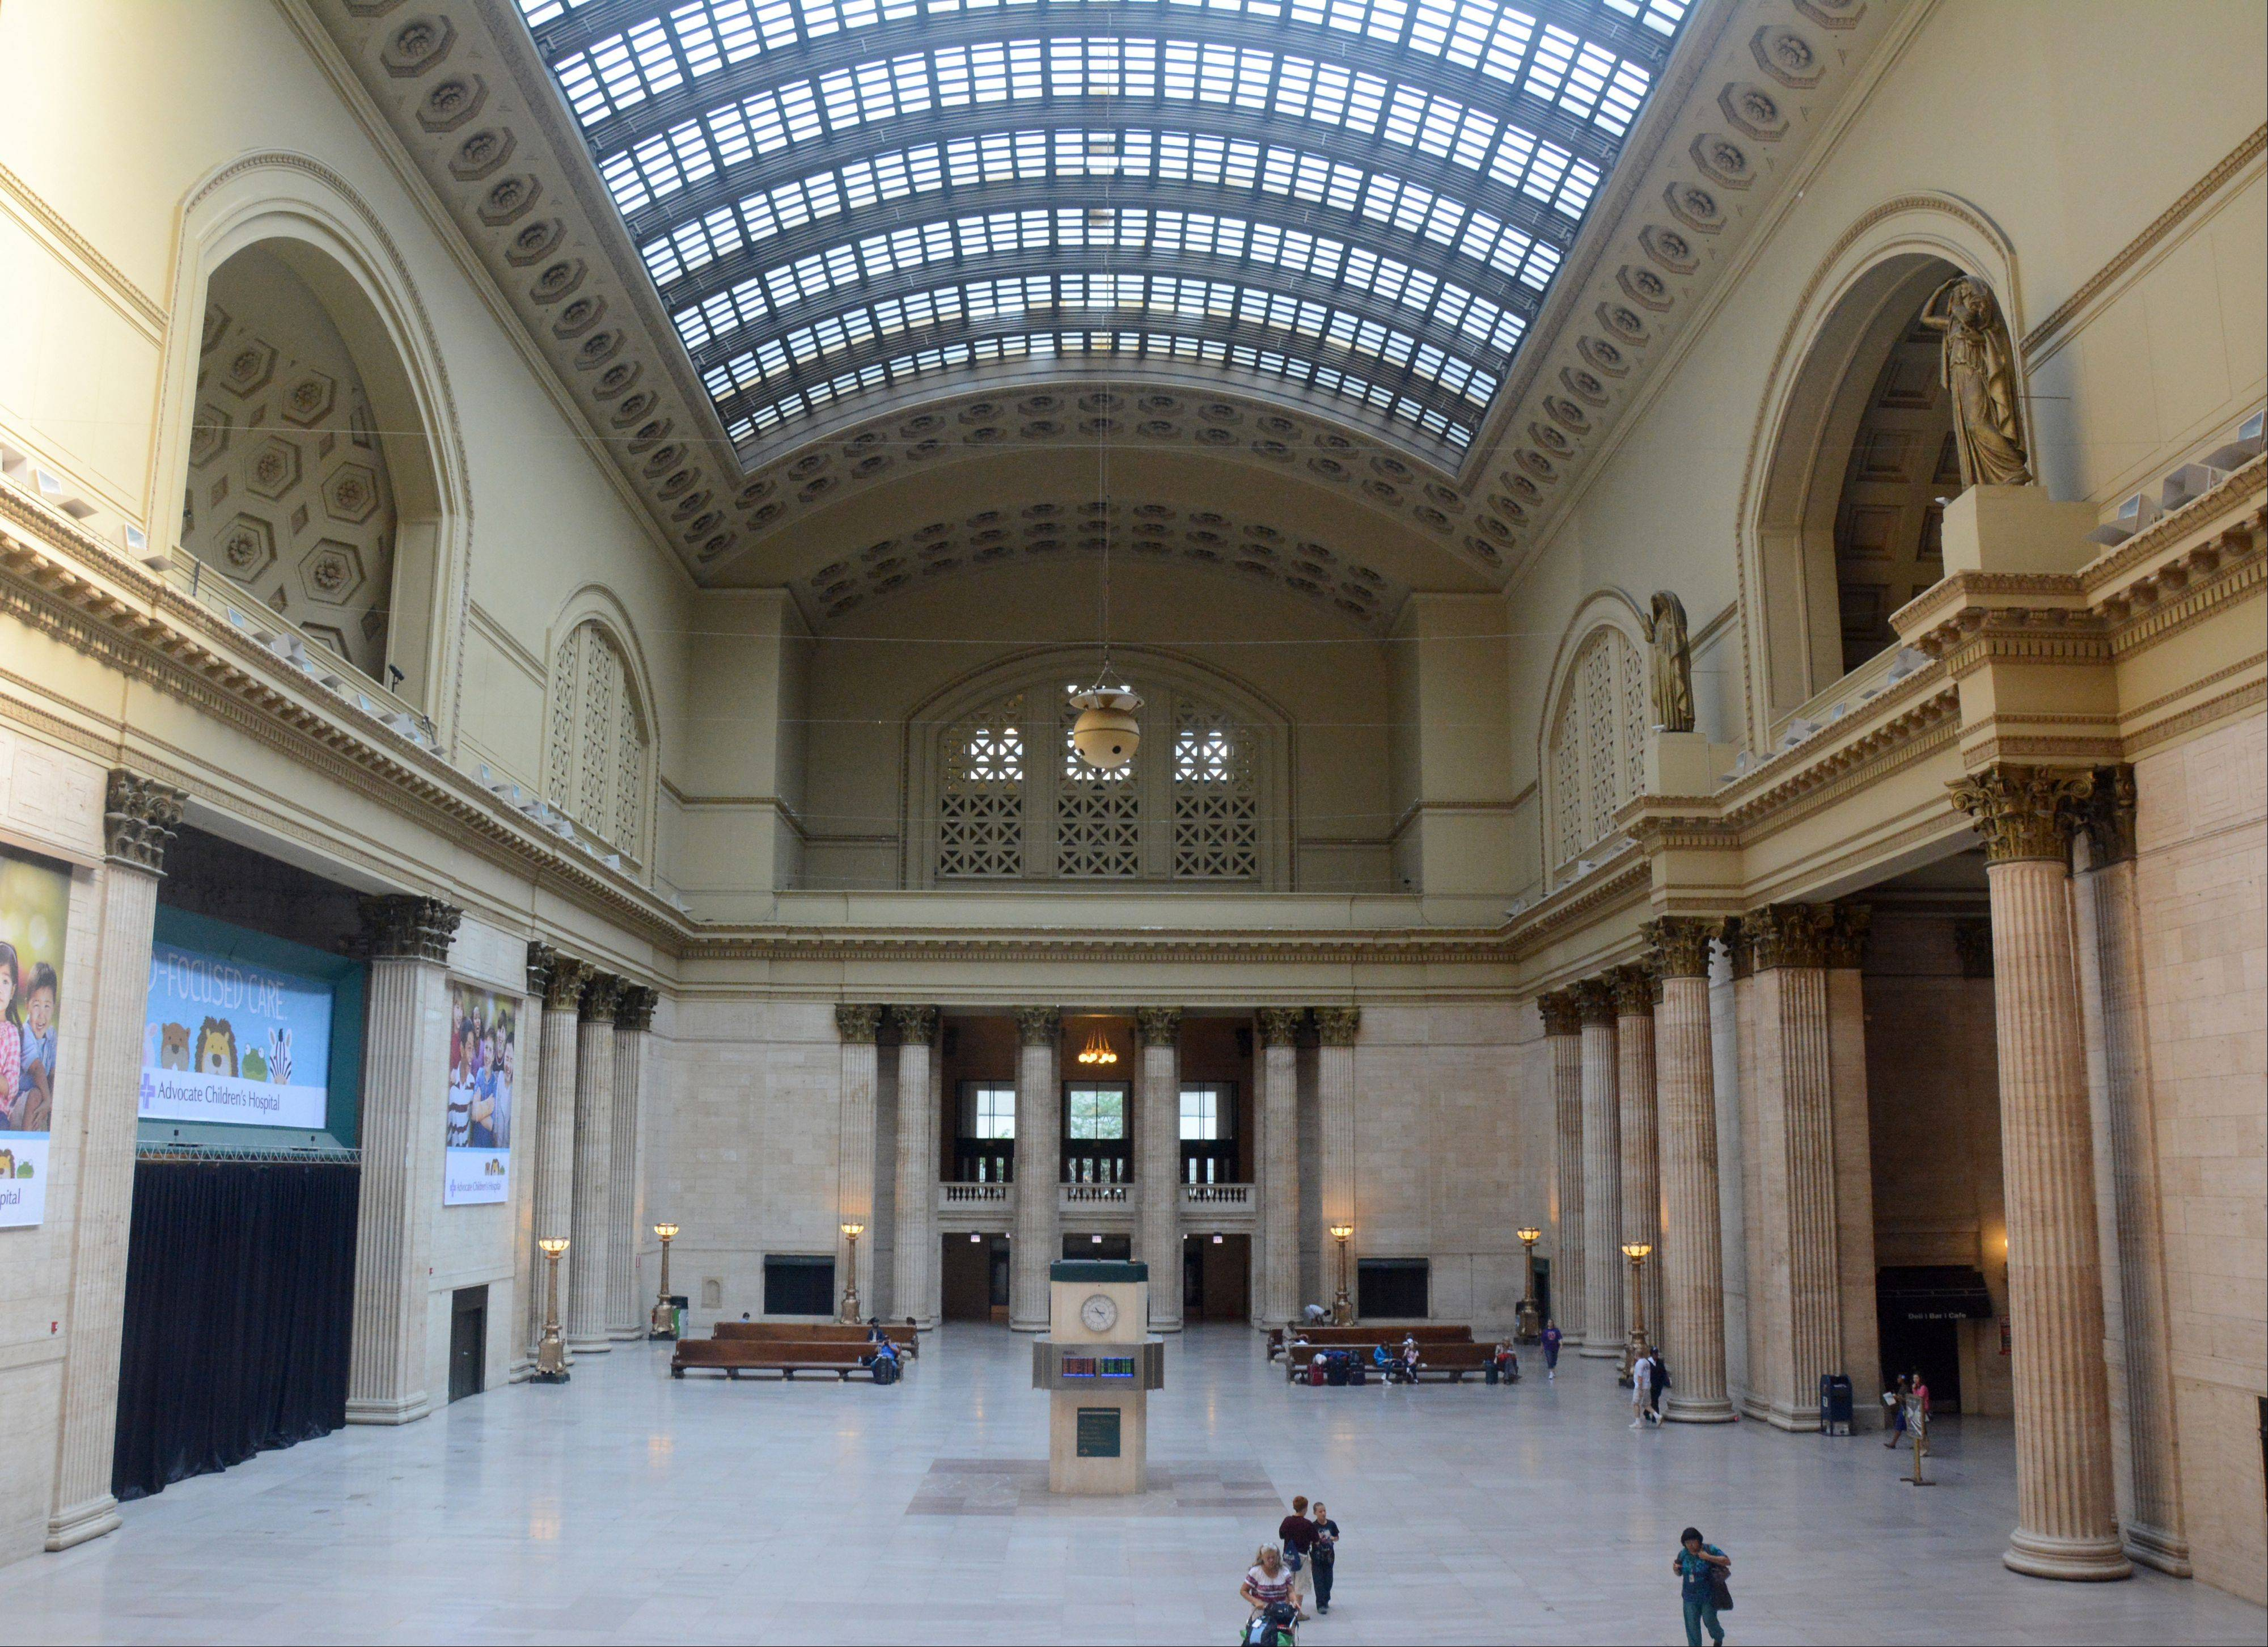 The Metropolitan Planning Council wants ideas on how to transform underused space at Union Station, including the Great Hall.